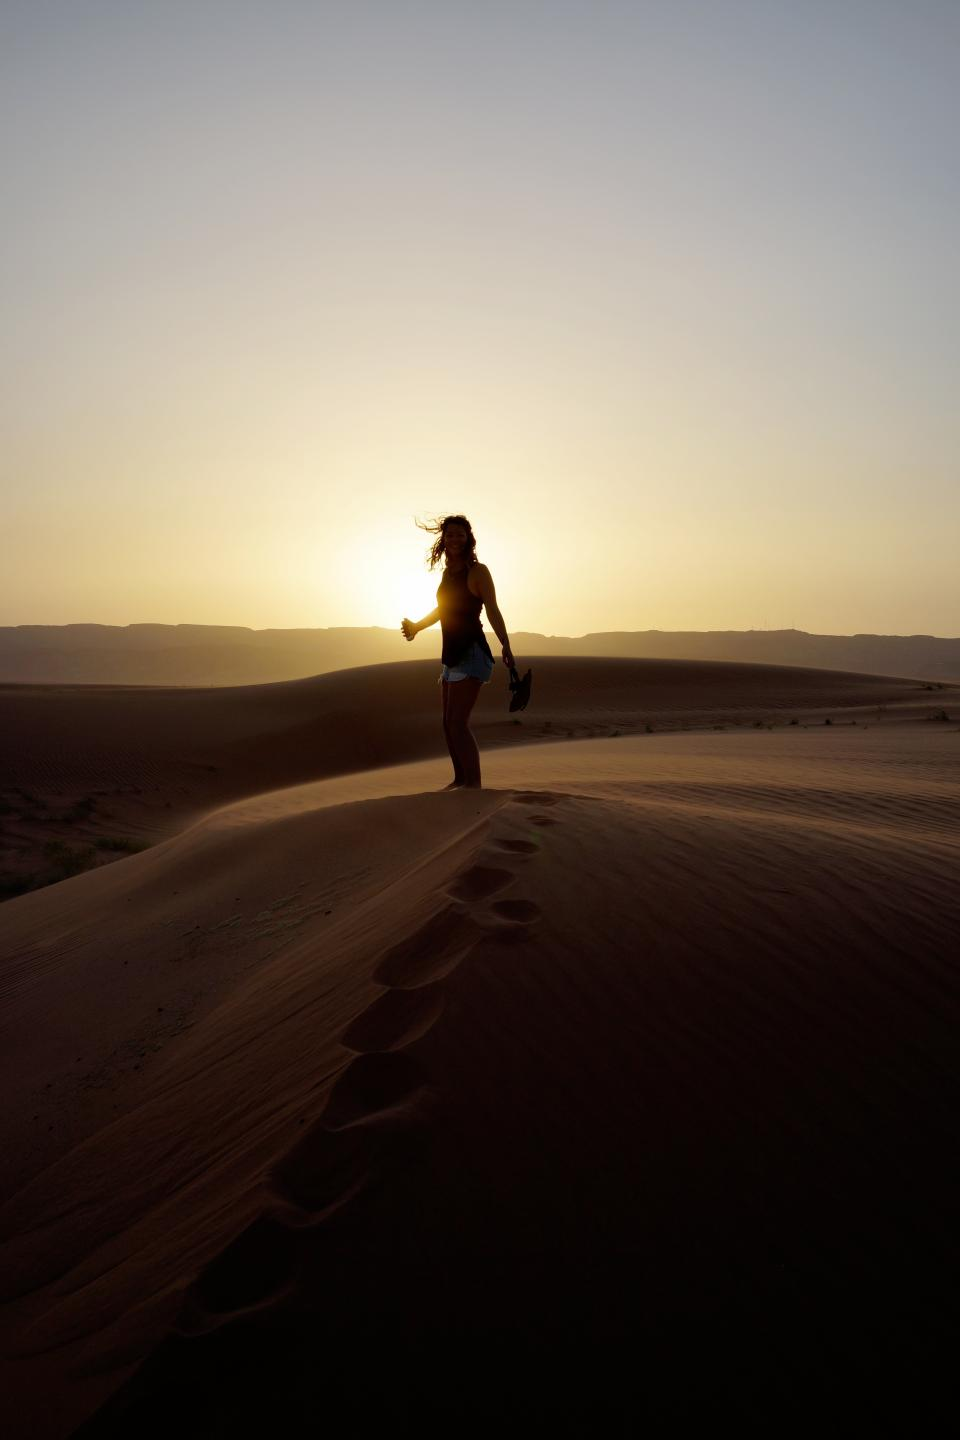 woman, girl, lady, people, stand, desert, dusk, dawn, sunset, sunrise, silhouette, light, shadows, gradient, yellow, brown, black